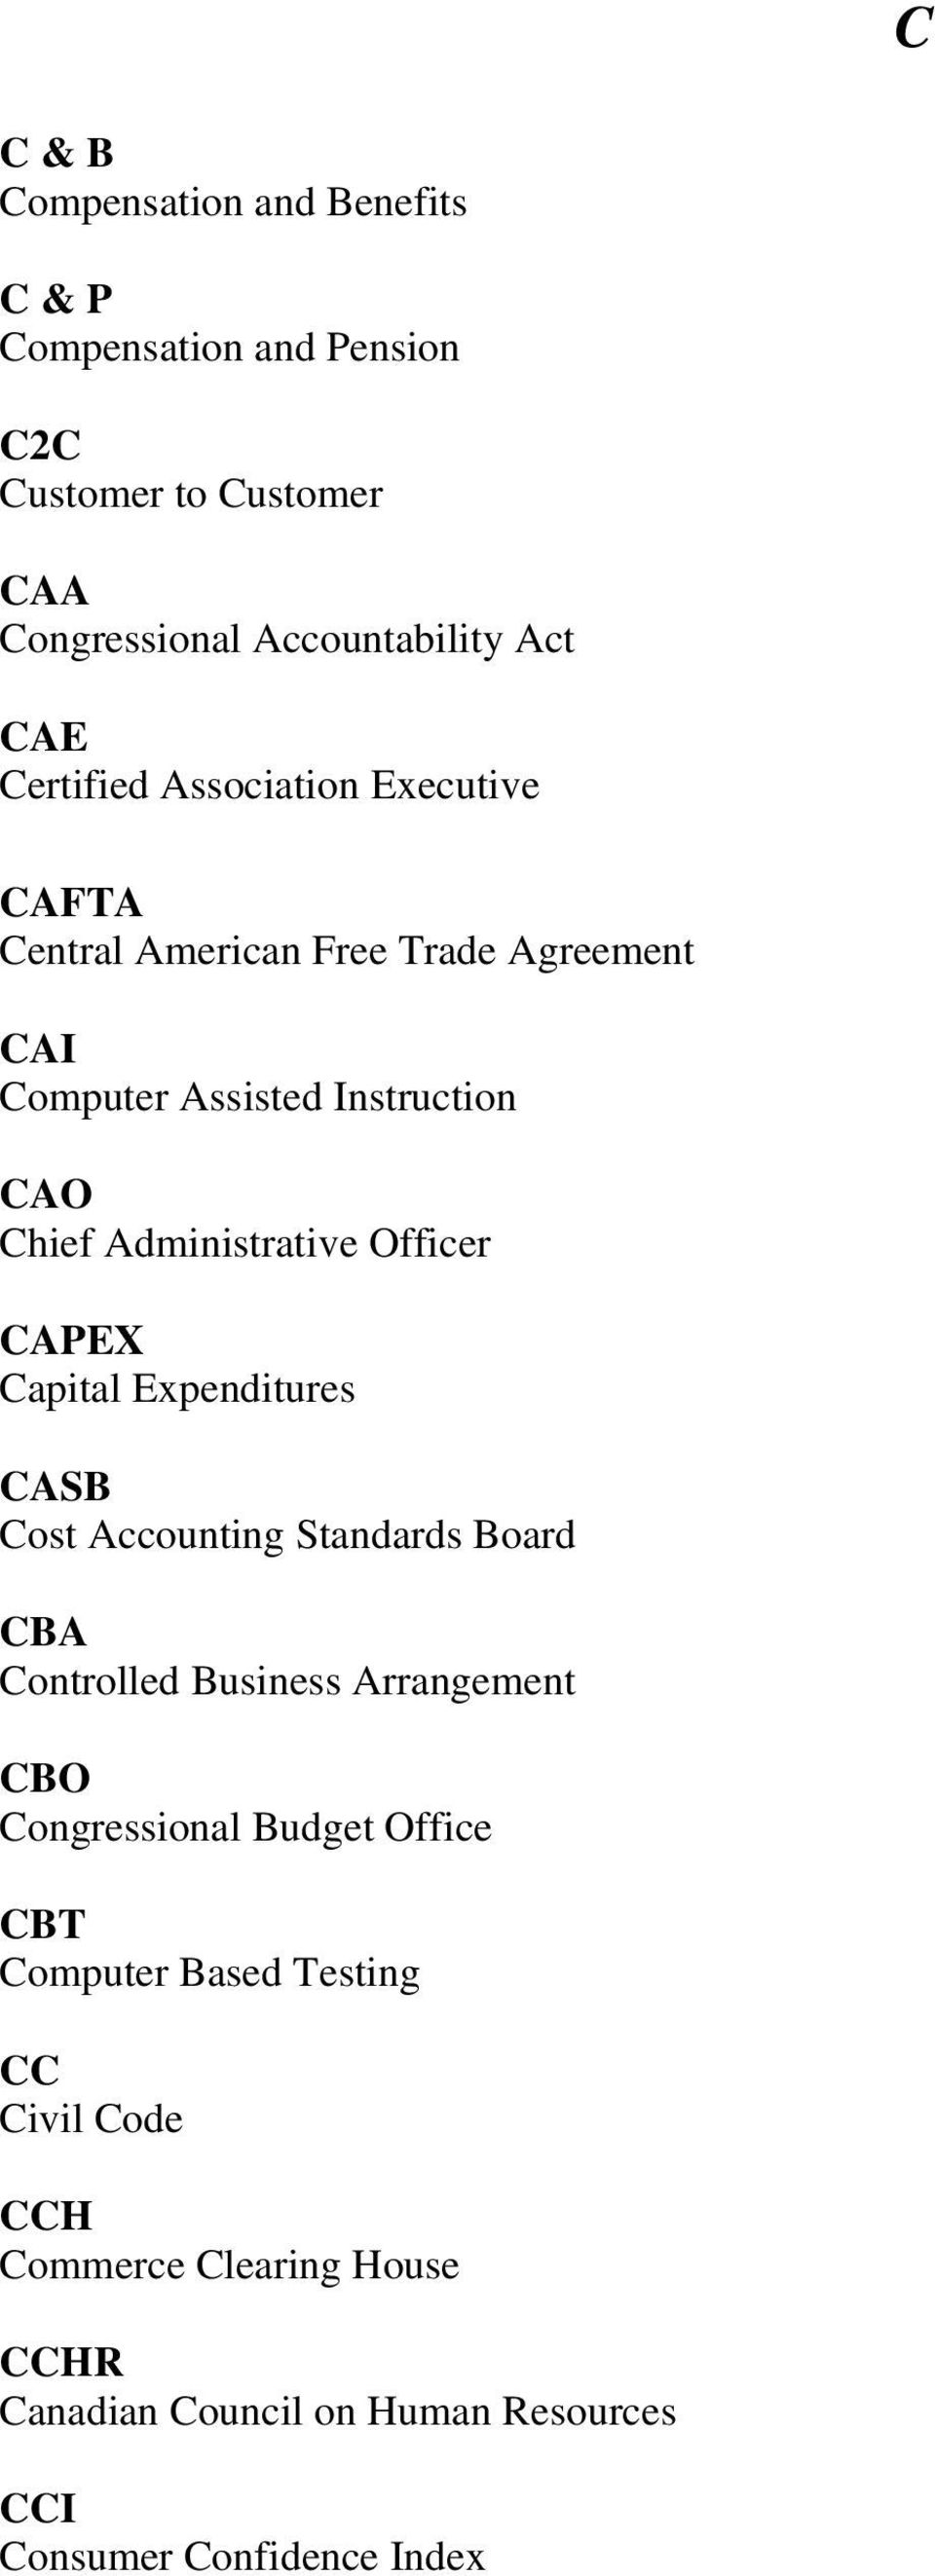 Officer CAPEX Capital Expenditures CASB Cost Accounting Standards Board CBA Controlled Business Arrangement CBO Congressional Budget